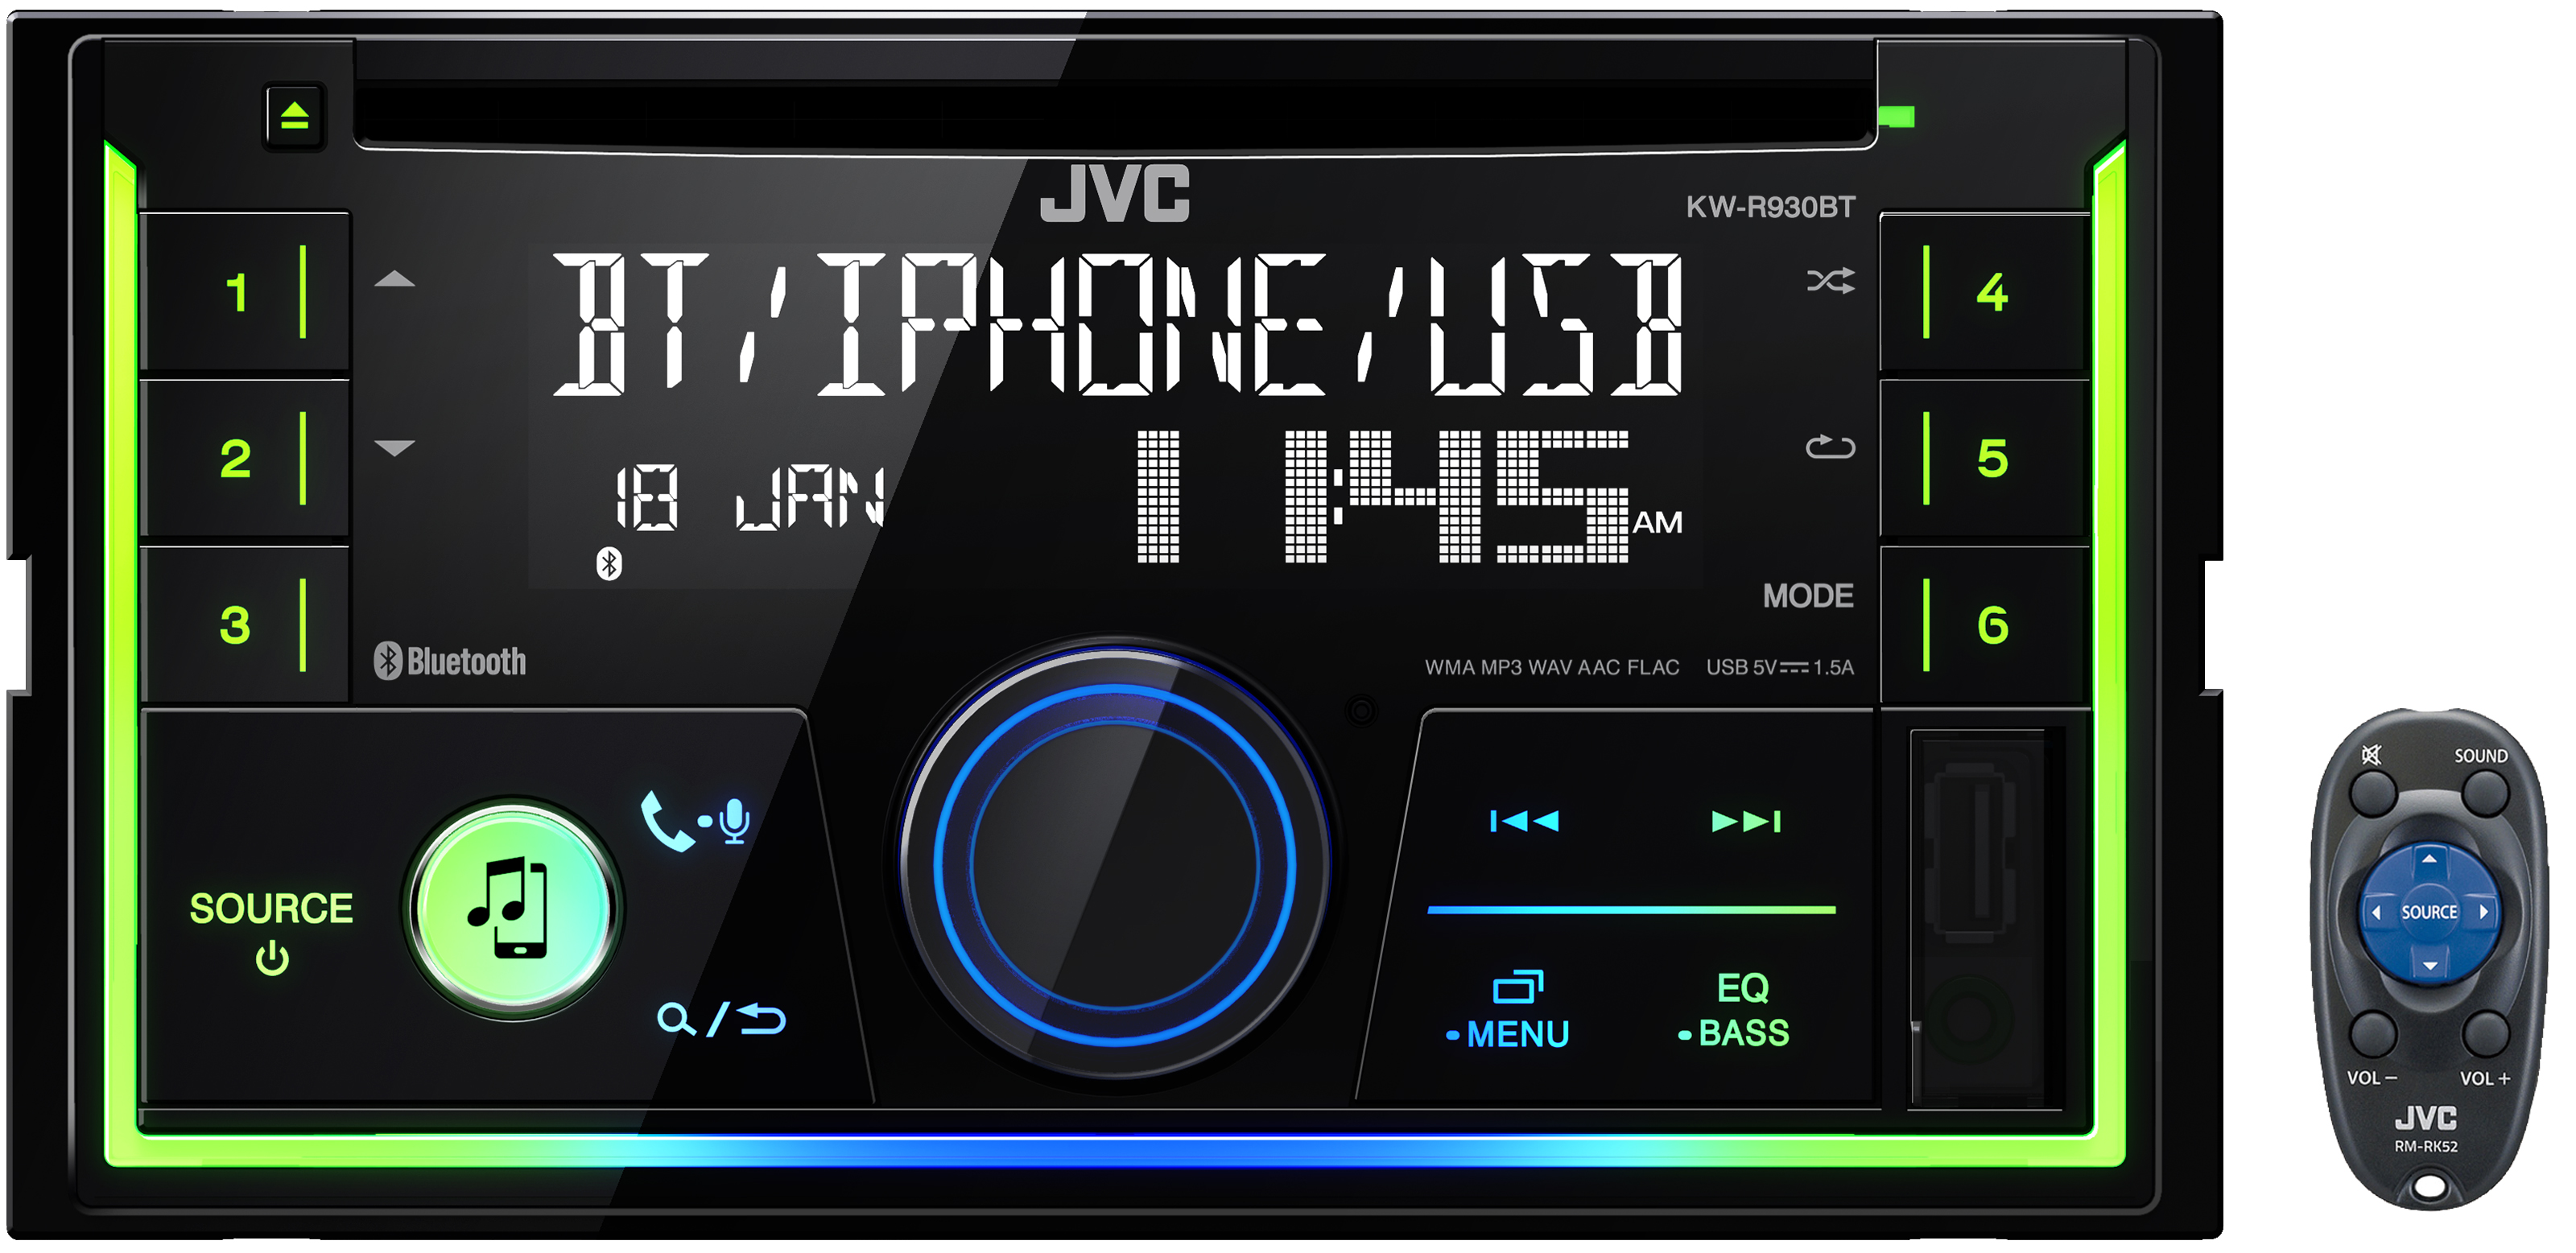 Jvc Kw R930bt Double Din Cd Front Usb End 9 7 2020 458 Pm To Wiring Diagram Aux Car Stereo Receiver